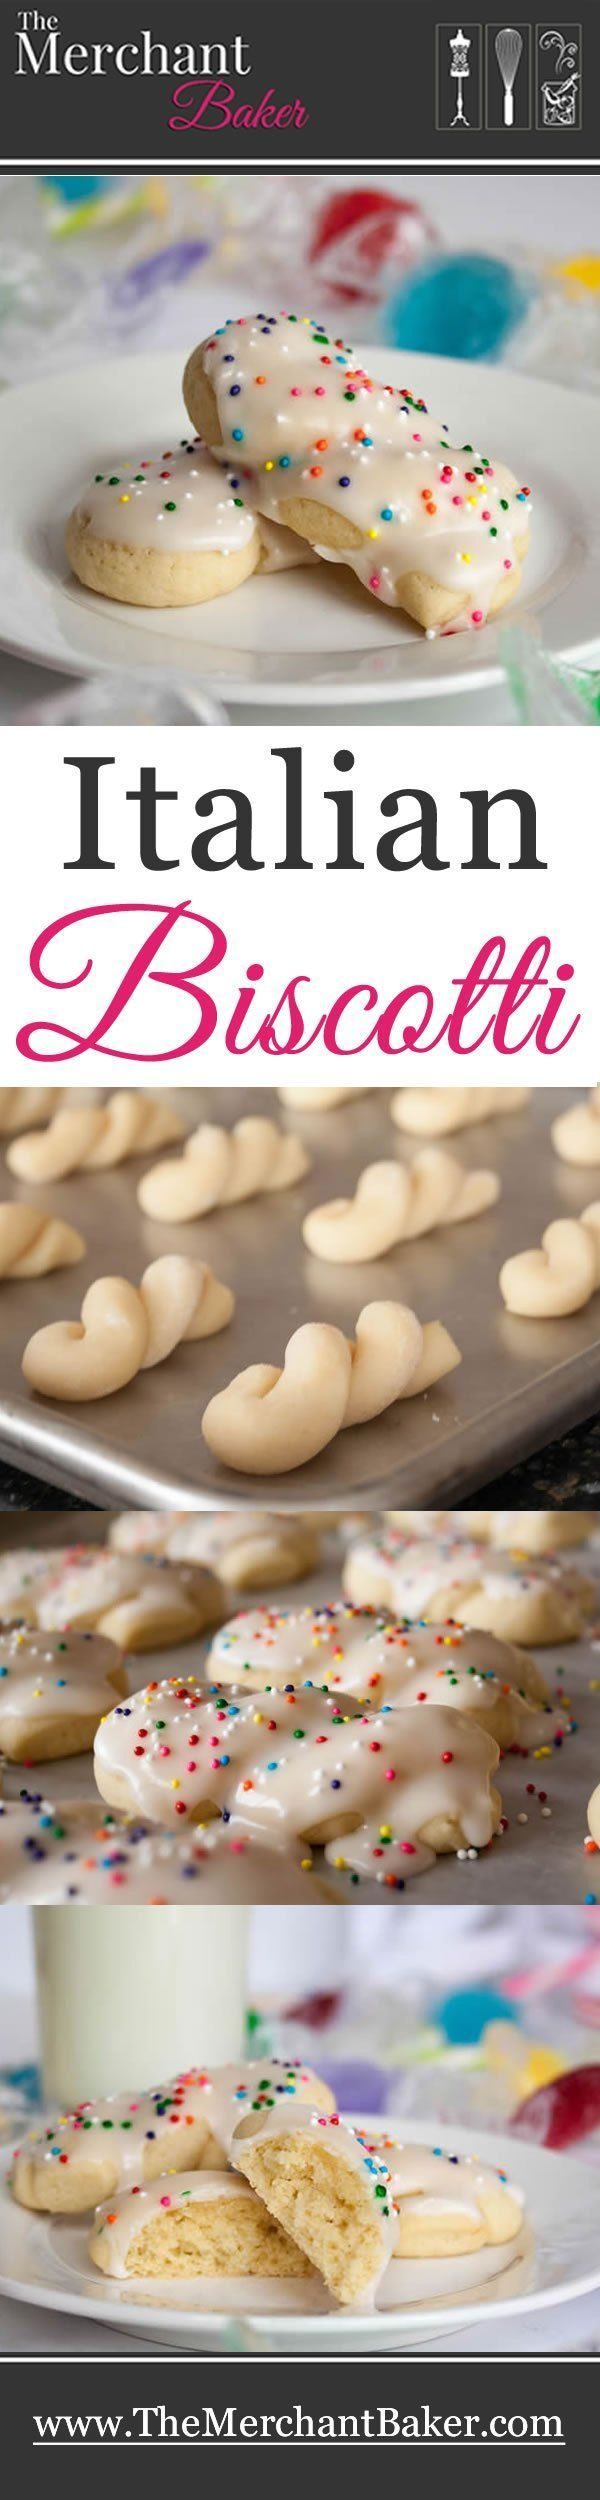 Italian Biscotti. The very best recipe for this traditionally soft and tender iced vanilla cookie.